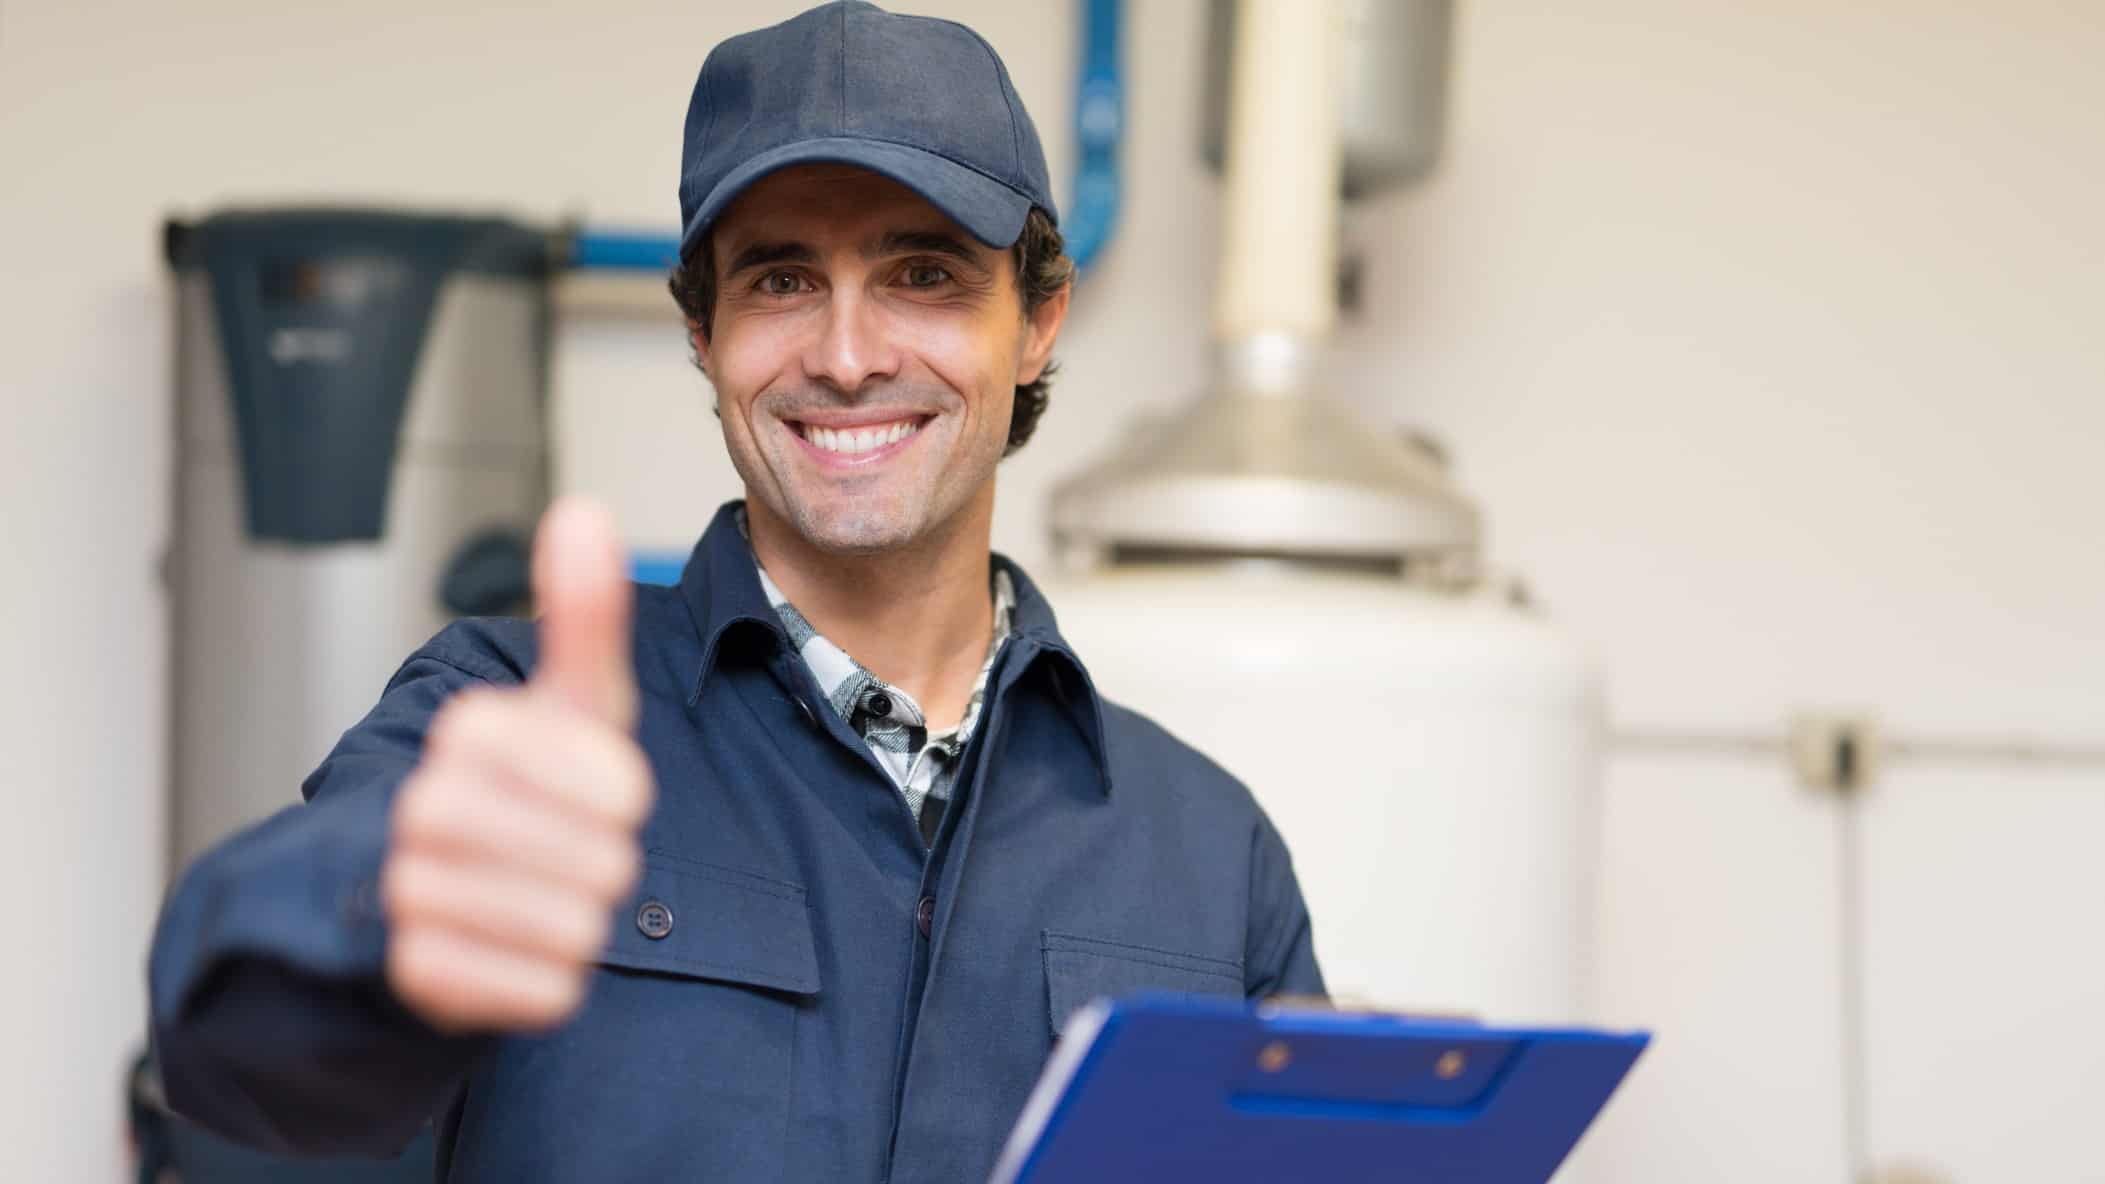 A plumber gives the thumbs up, indicating a positive share price in ASX plumbing and building